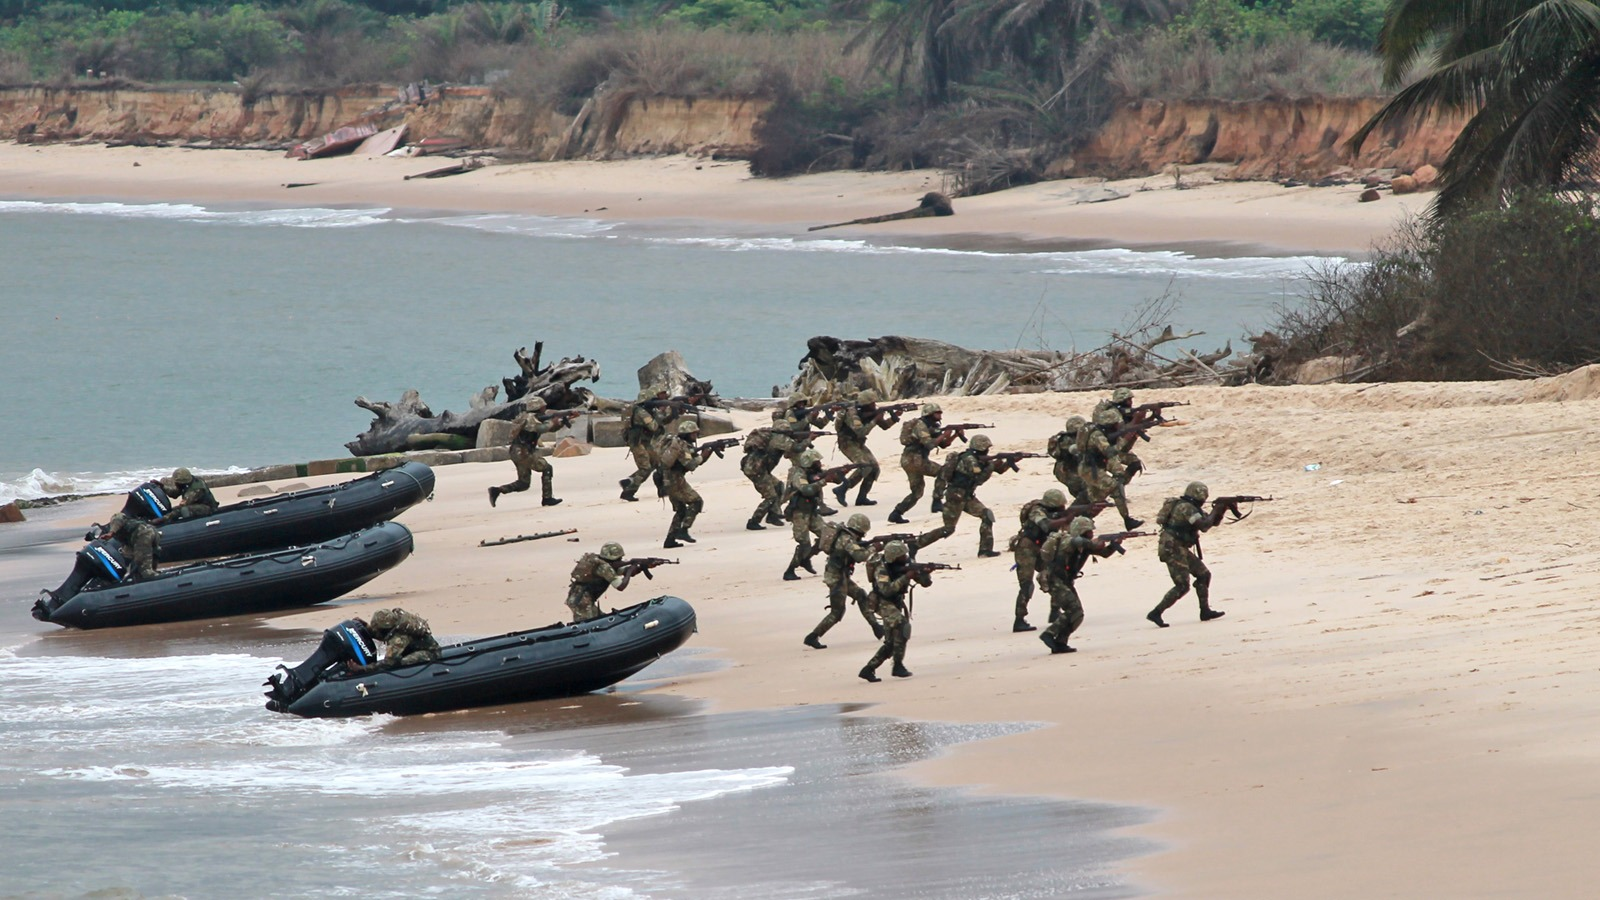 Troops of the Central African Economic Community land on a beach in the Republic of Congo as part of multinational manouevrers